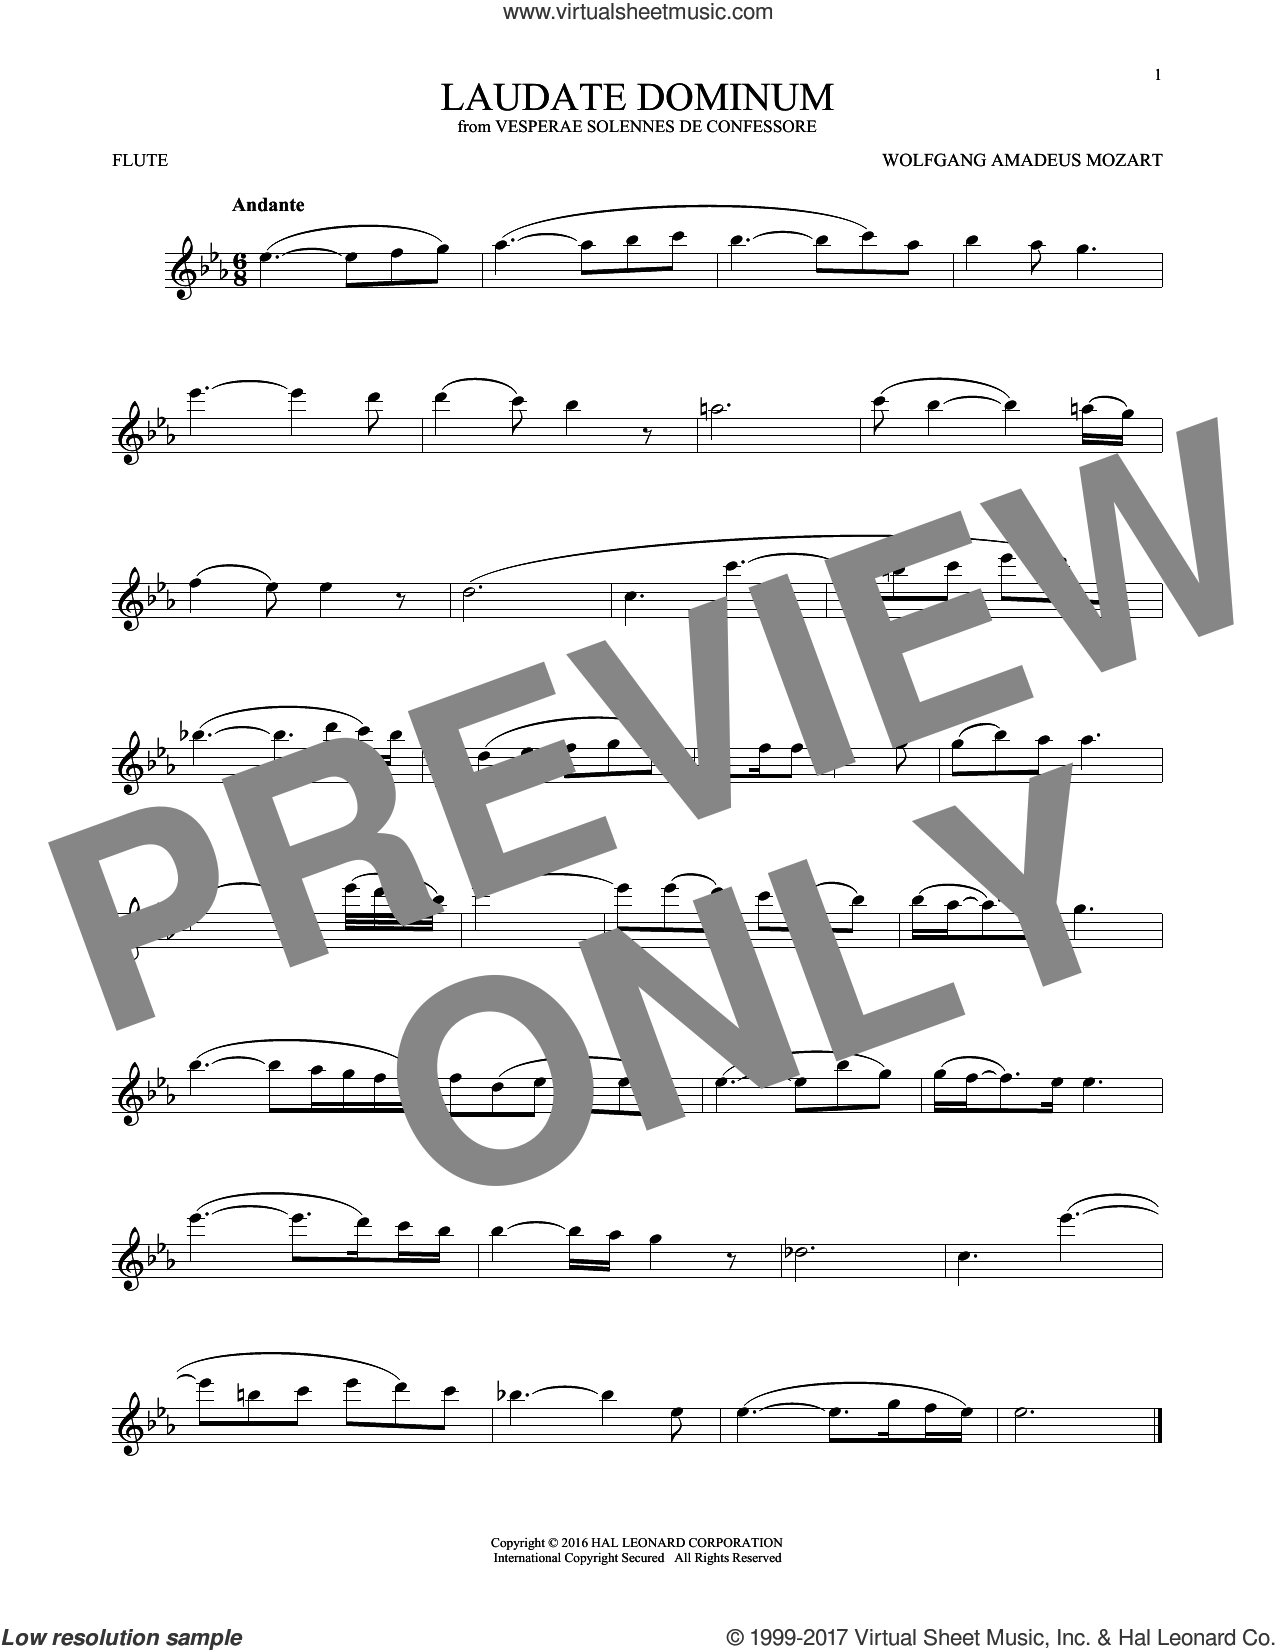 Laudate Dominum sheet music for flute solo by Wolfgang Amadeus Mozart, classical score, intermediate skill level